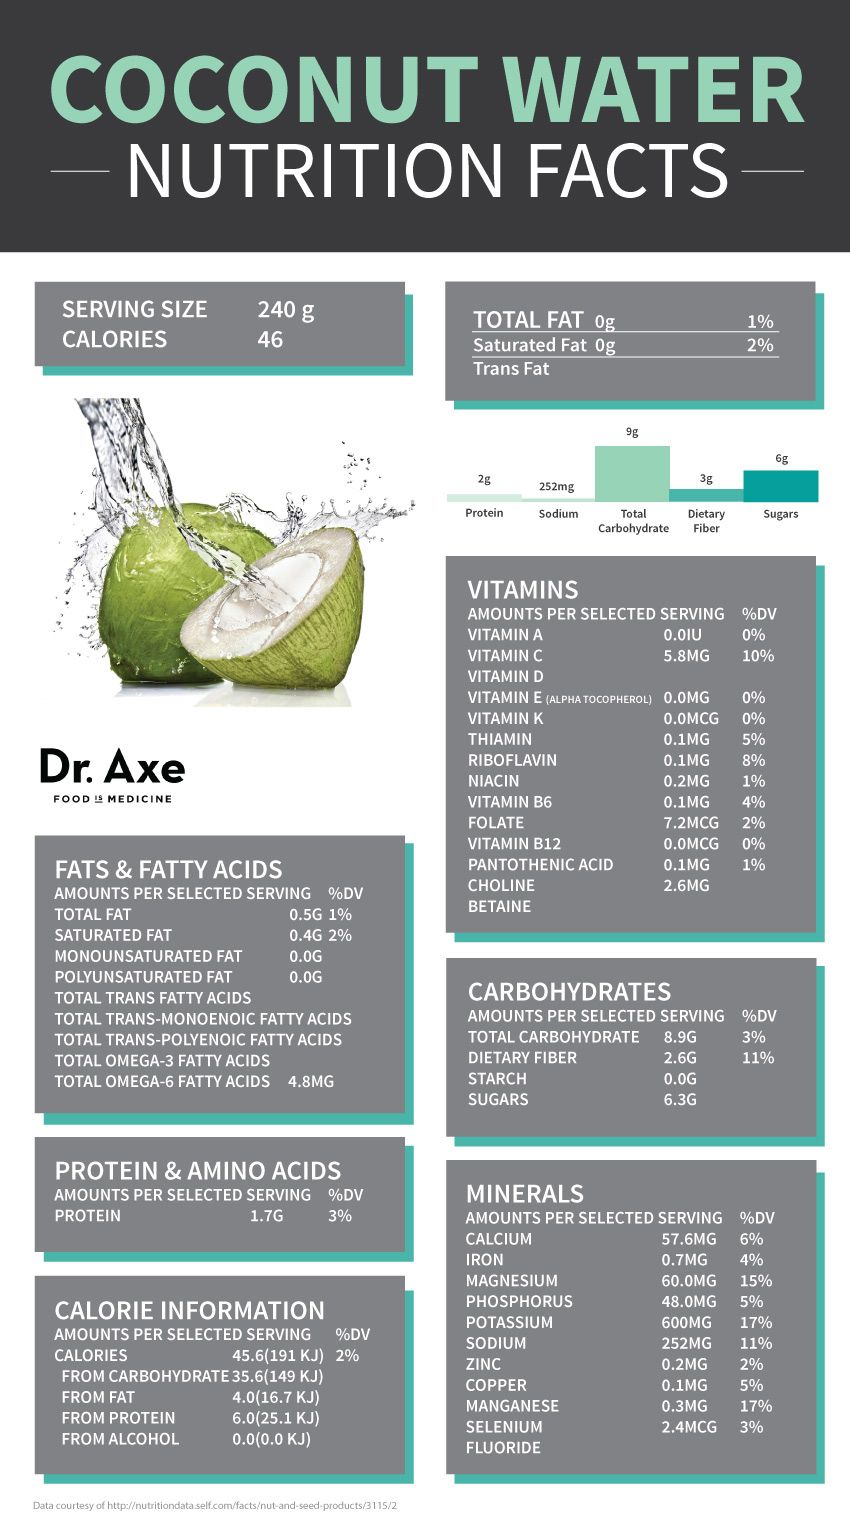 coconut water: is it good for you? 5 major benefits (with